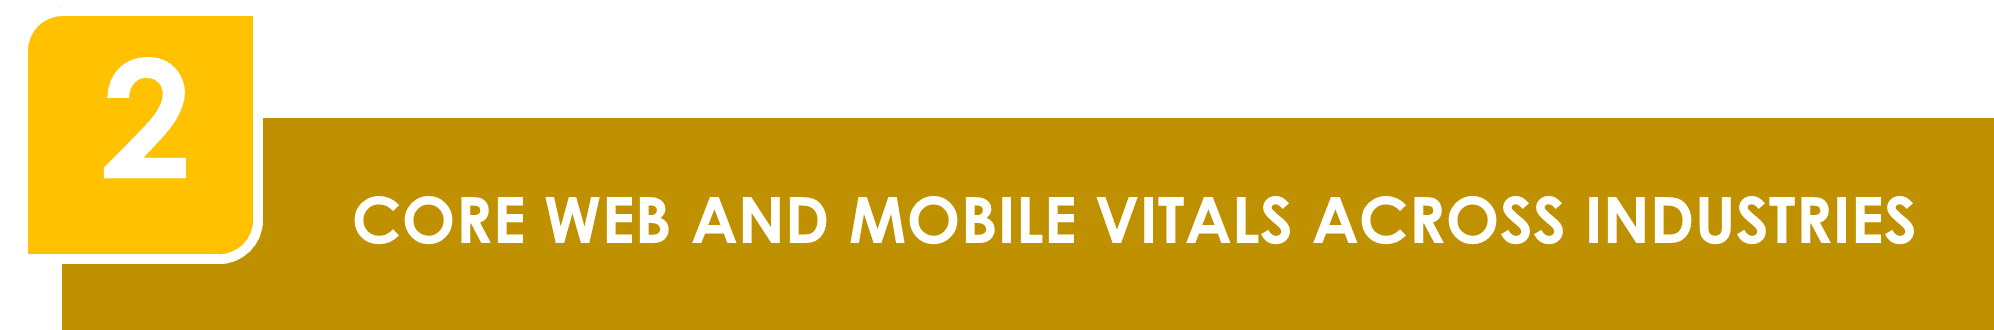 Core Web and Mobile Vitals Across Industries